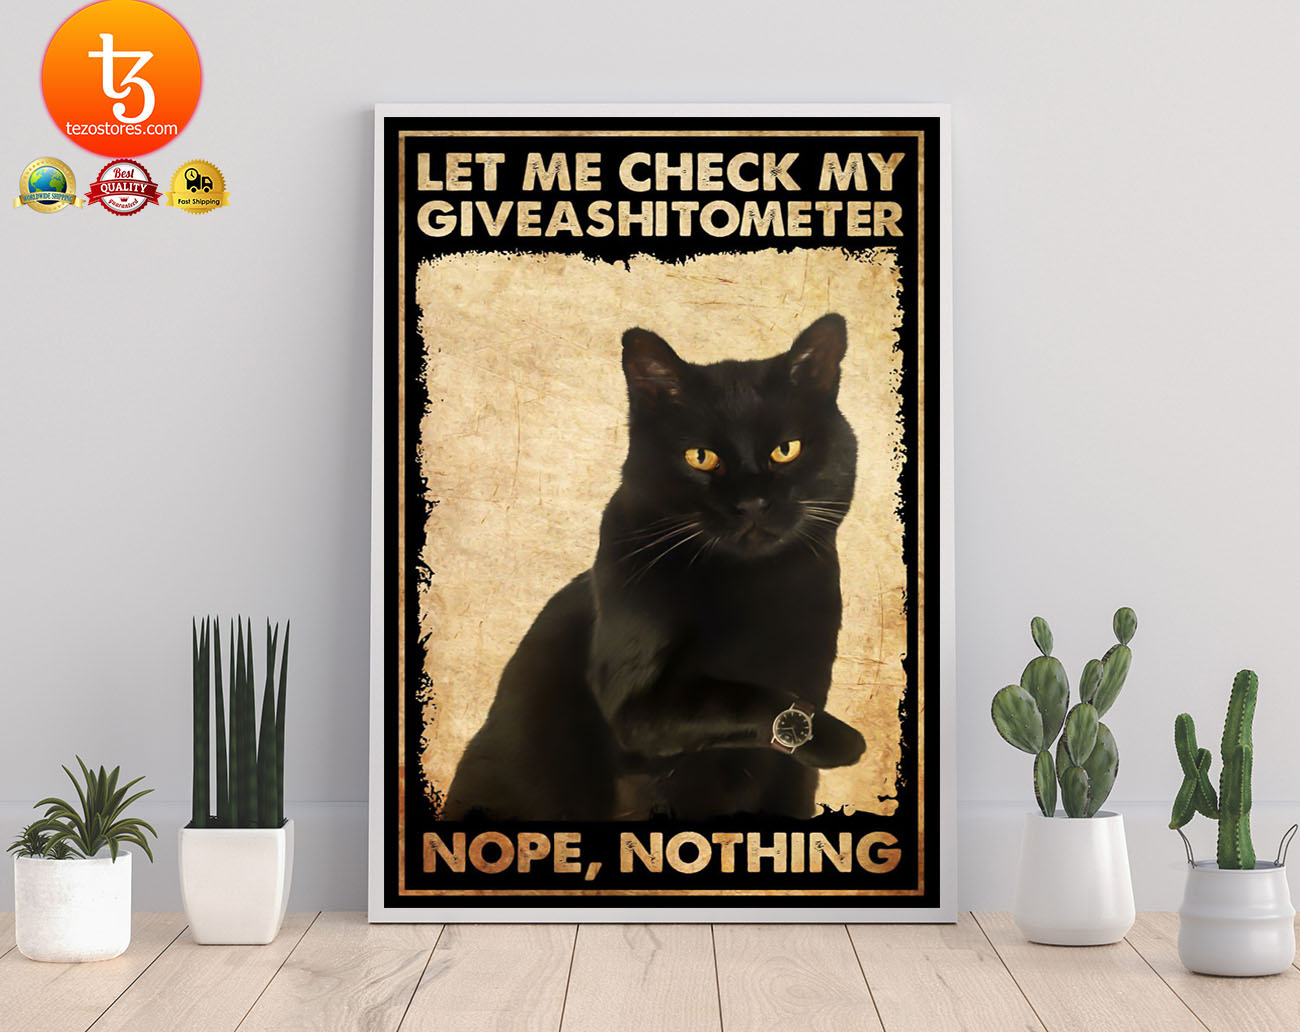 Let me check my giveashitometer nope nothing poster 4